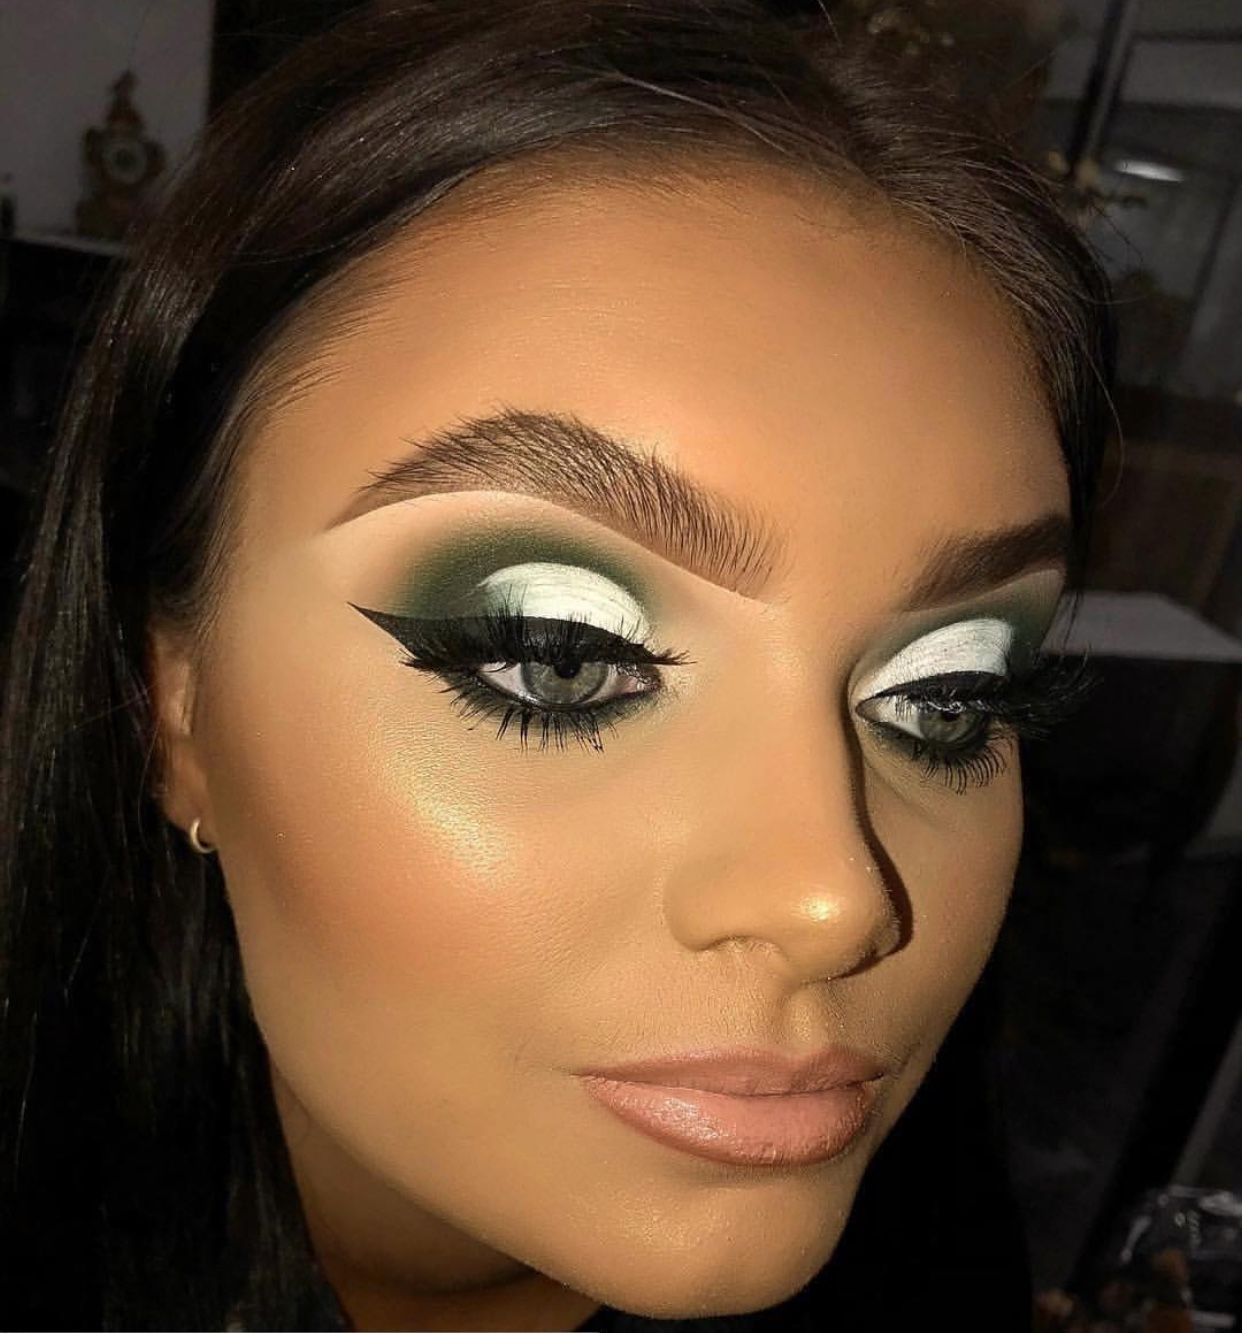 b1588a74343 Bold Makeup Look | Heavy Glam Makeup | Green White Black Eyeshadow |  Highlight and Contour | Nude Lipstick | Fluffy Fleeky Instagram Eyebrows |  Half Cut ...